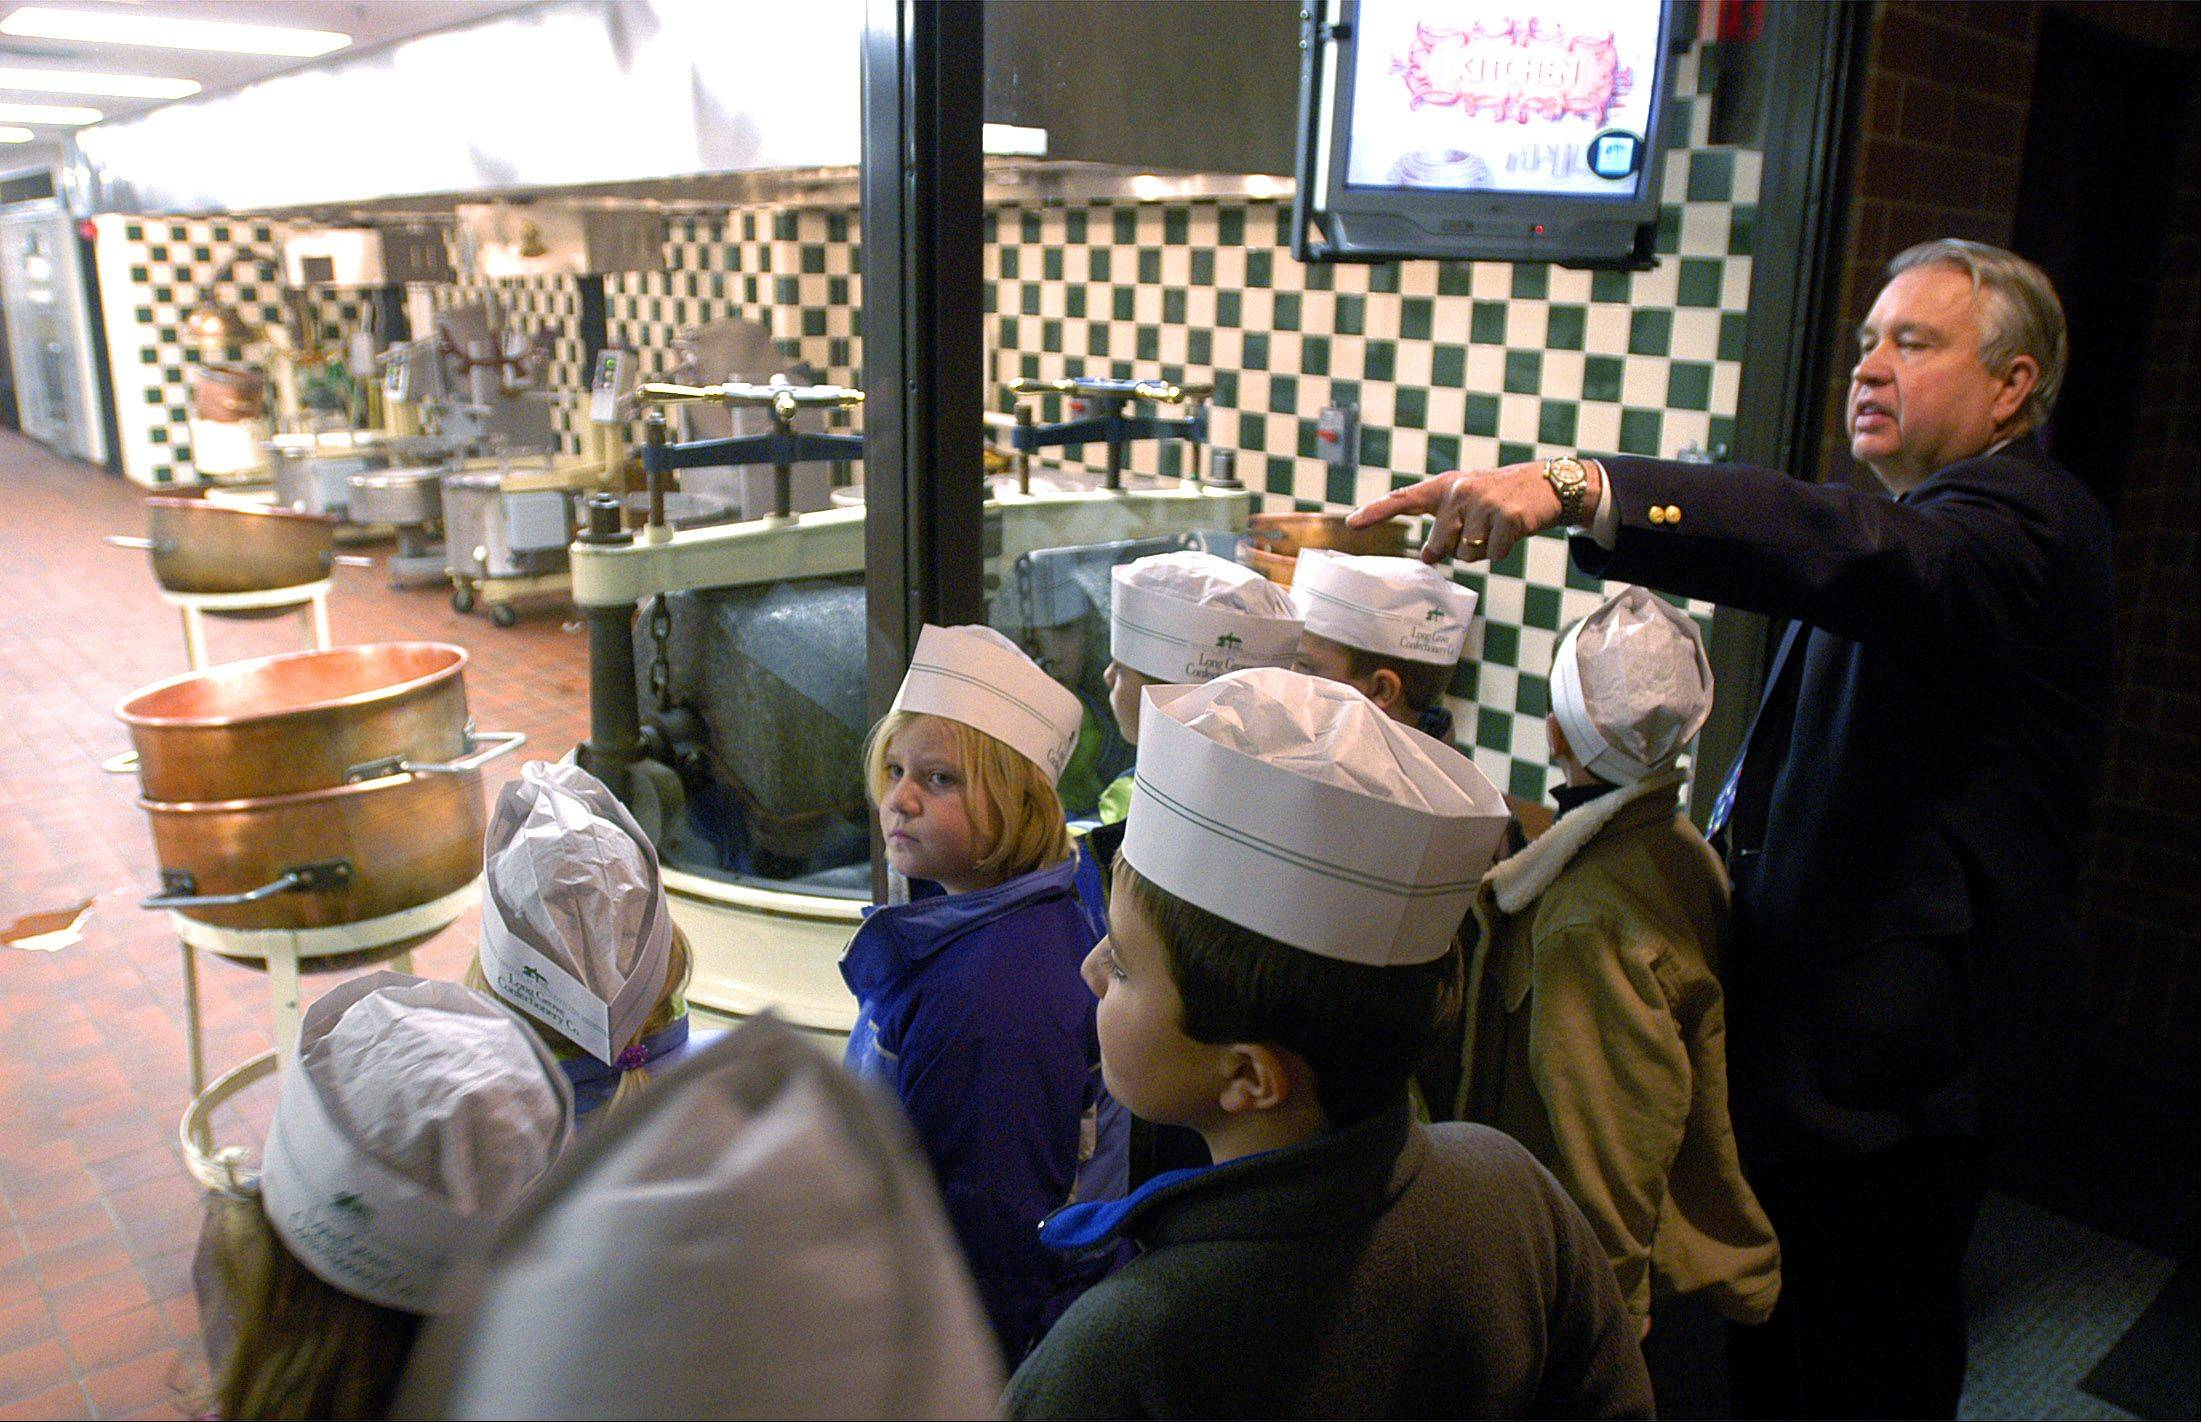 Long Grove Confectionery owner John Mangel shows students the kitchen area of his candy factory as they begin the tour of the company's new Buffalo Grove headquarters in December 2002.